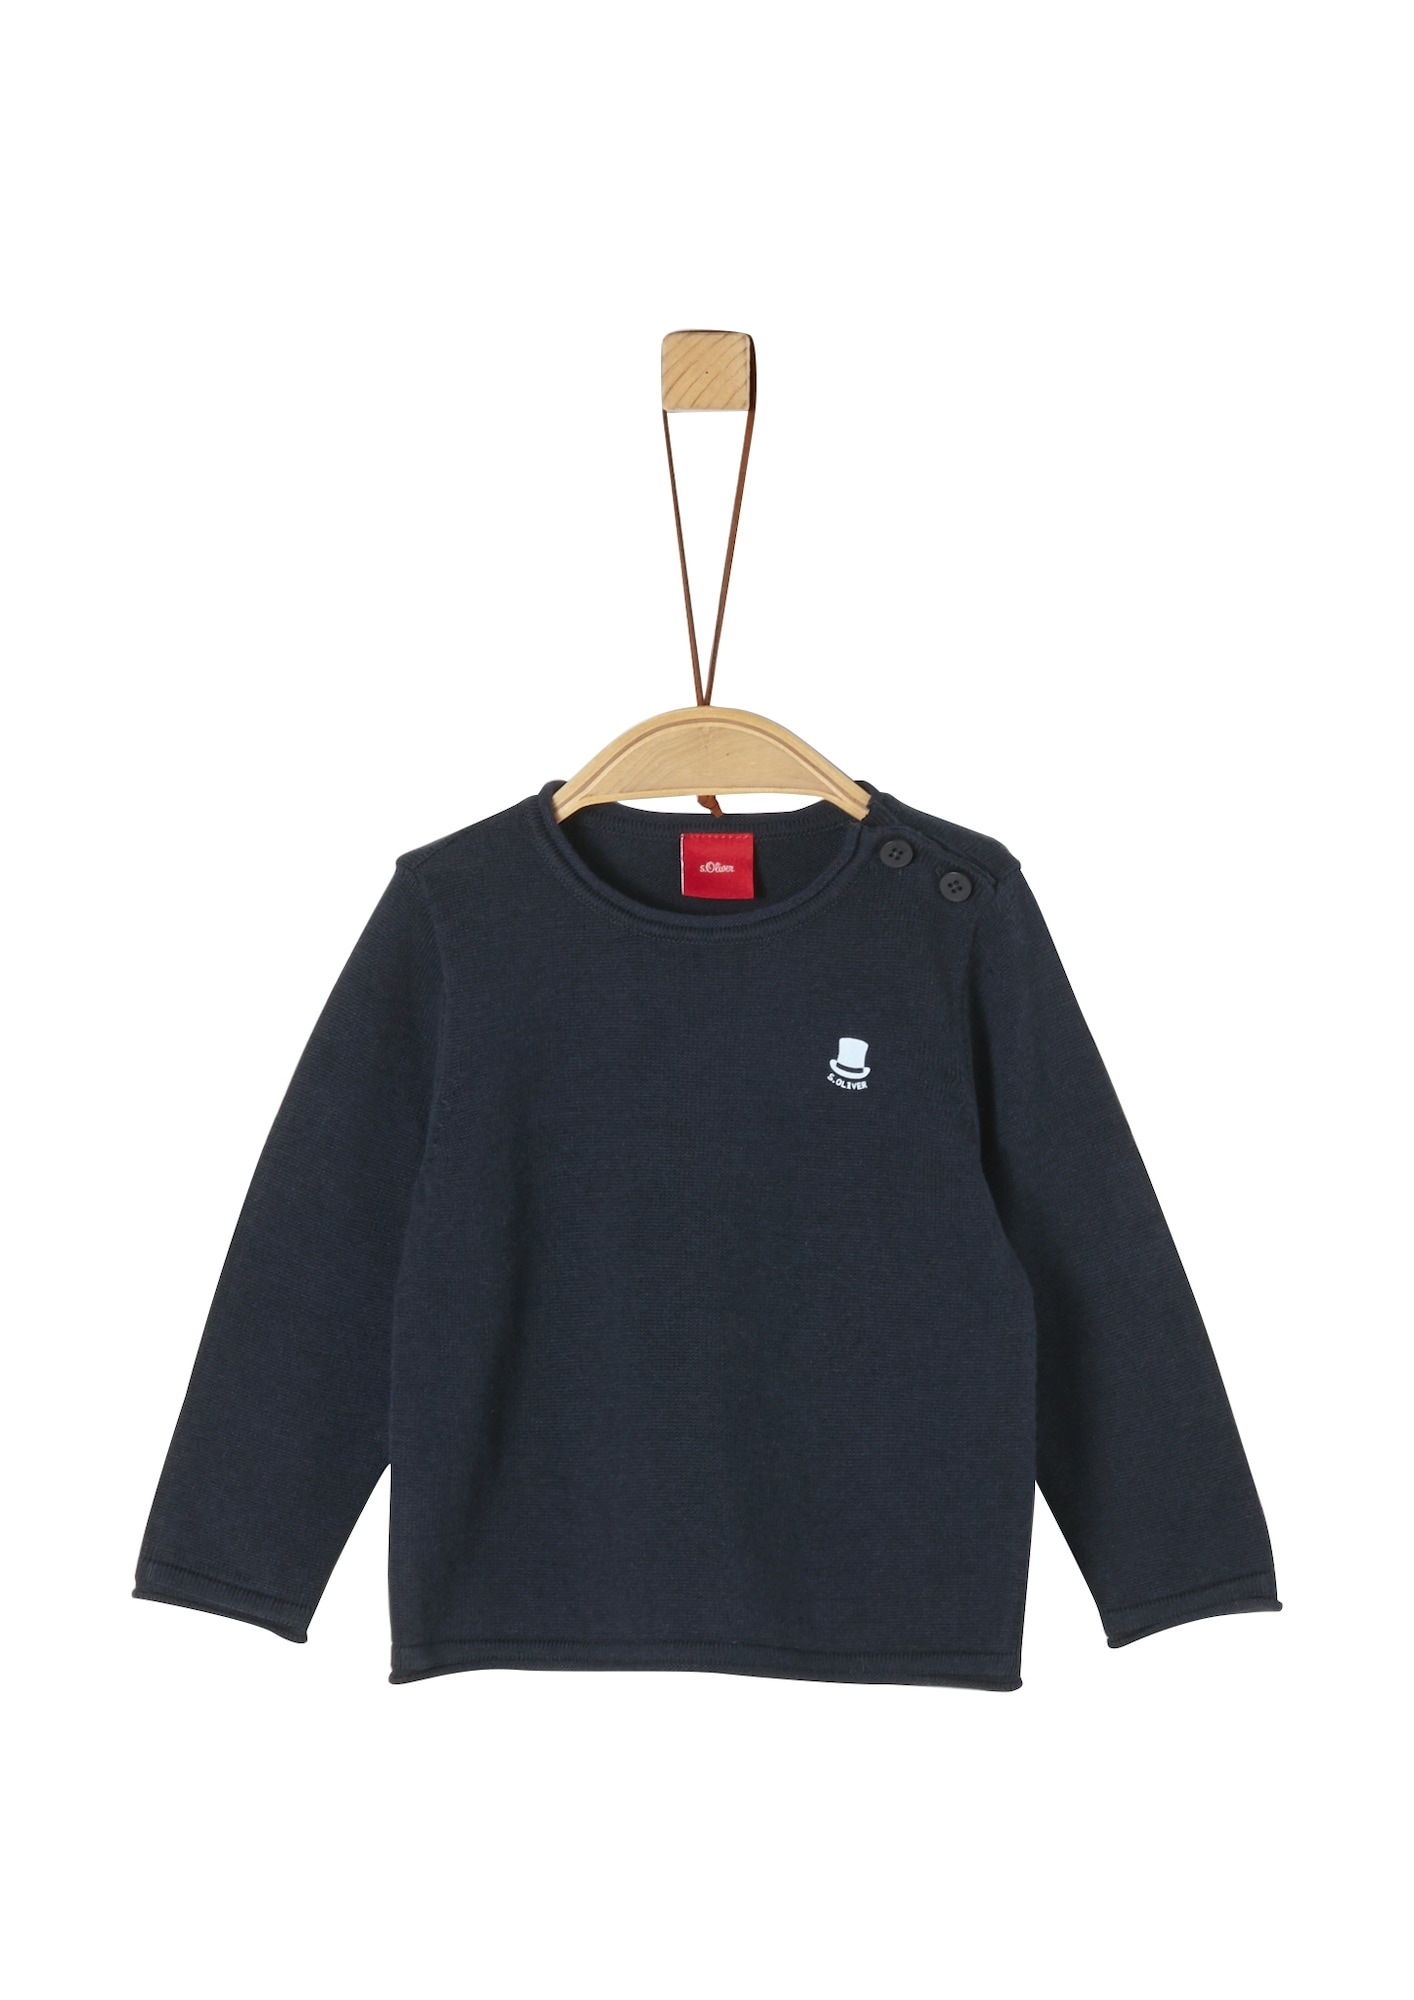 Babyoberteile - Pullover - Onlineshop ABOUT YOU